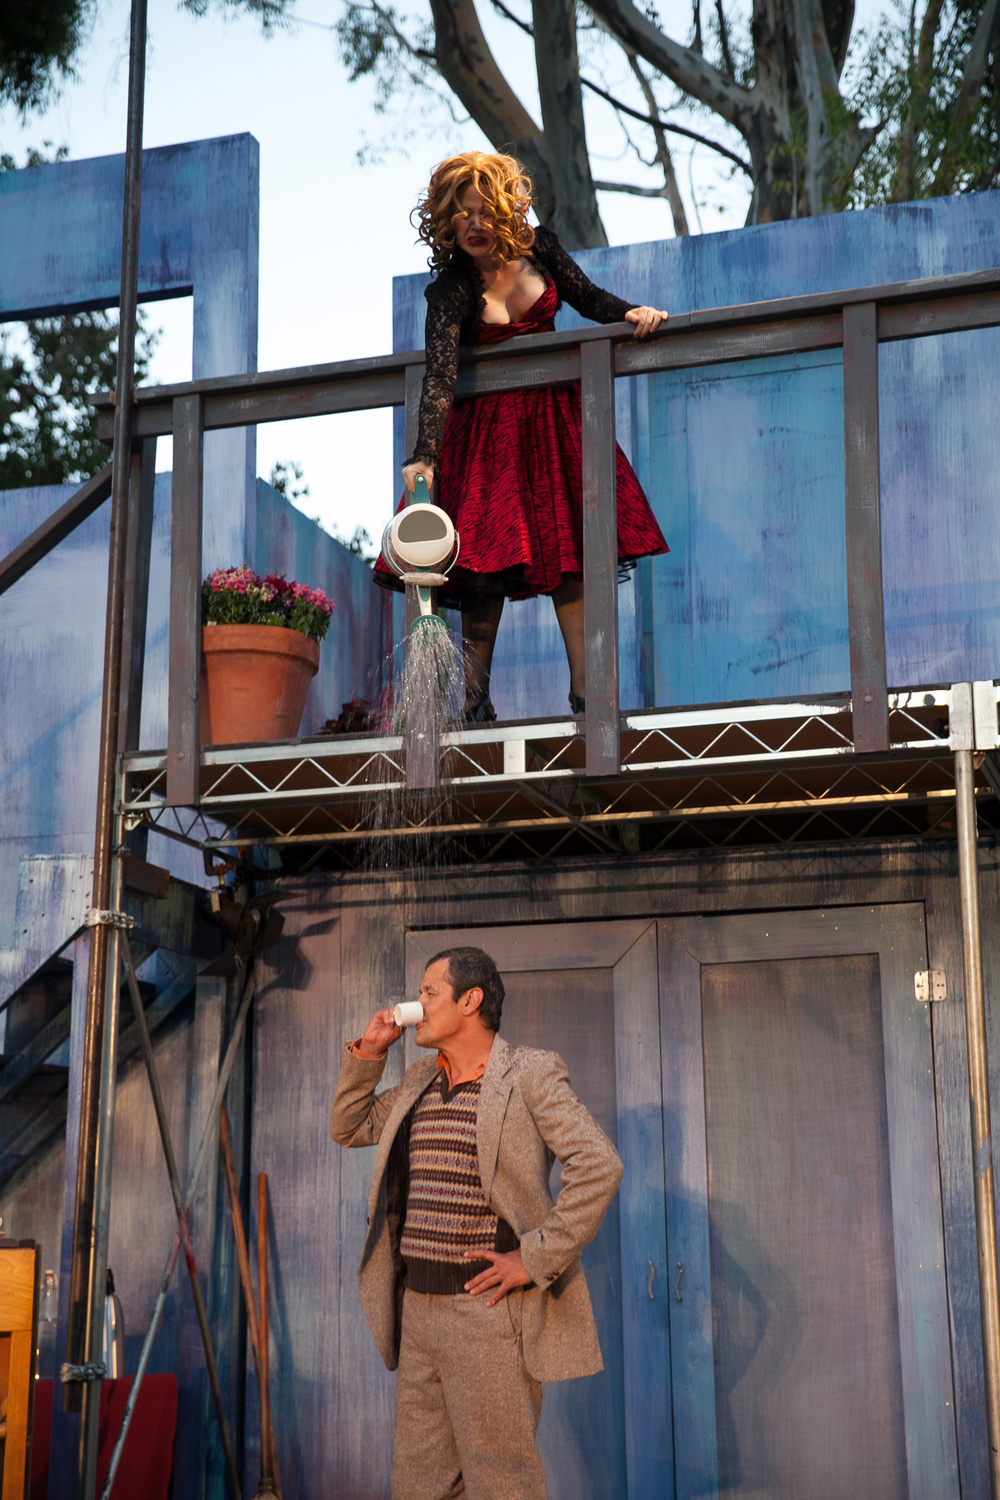 Melissa Chalsma and Luis Galindo in The Taming of the Shrew, 2014. Photo: Grettel Cortes.